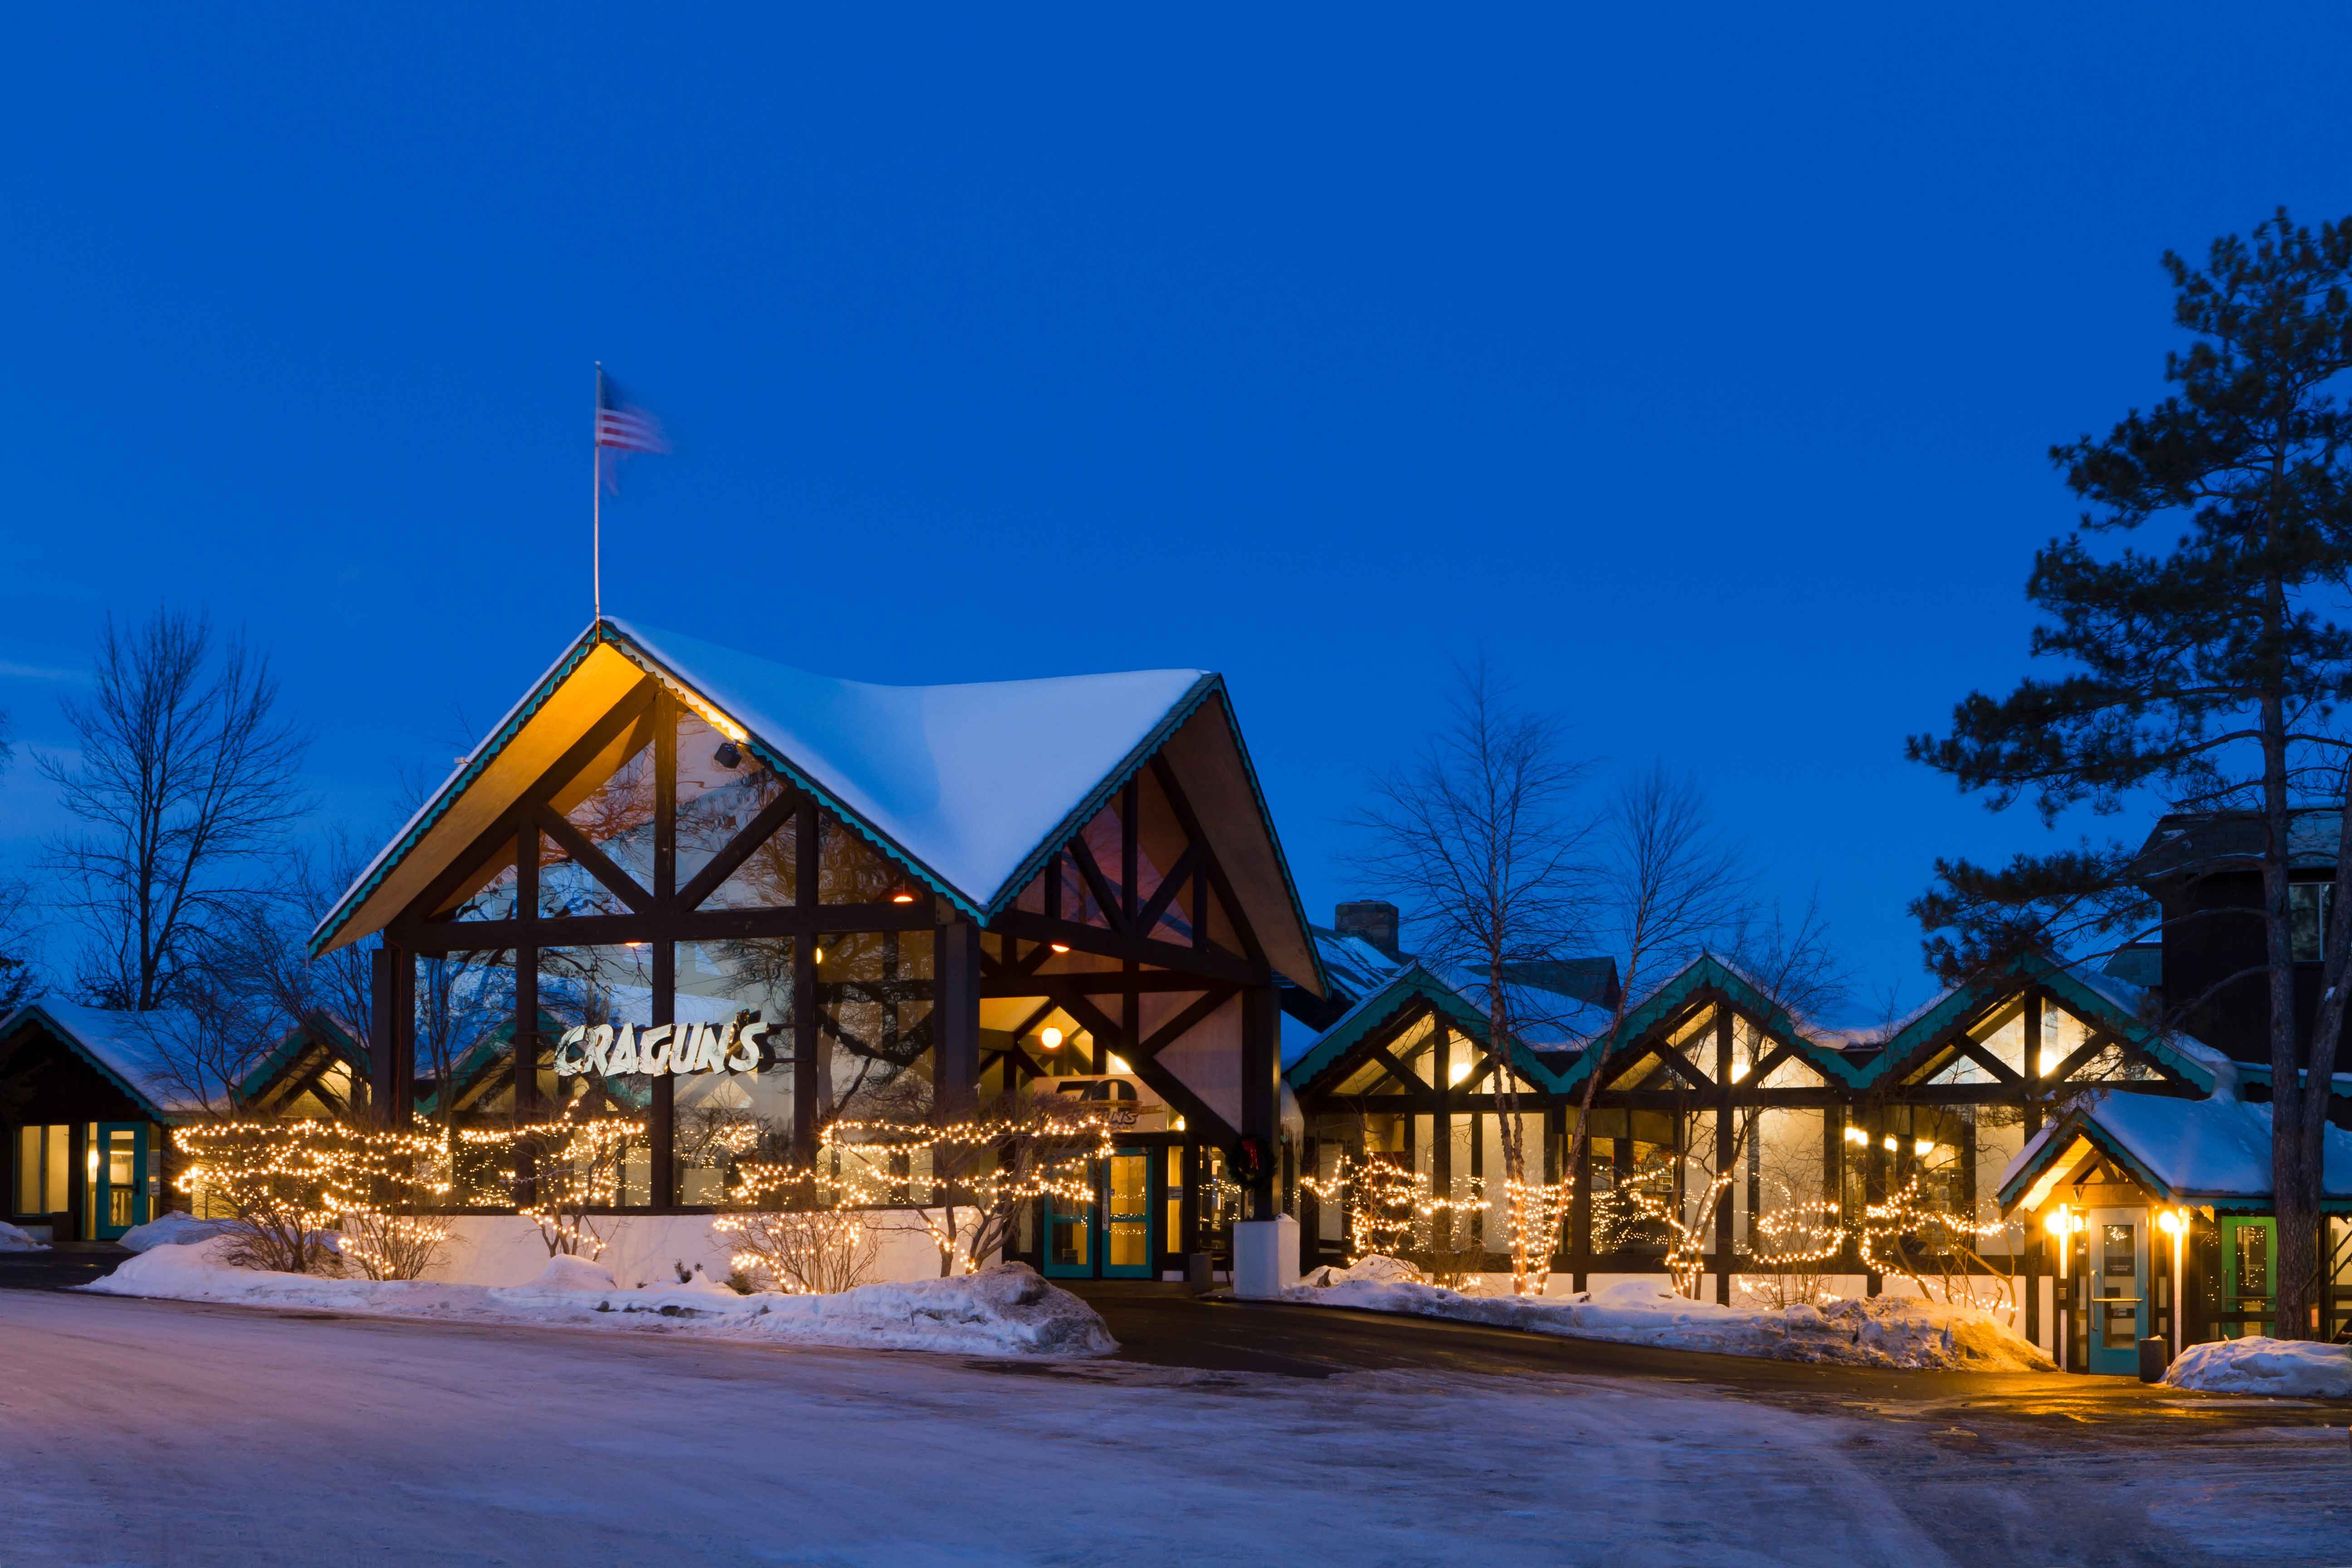 Celebrate the Holidays at Cragun's Resort